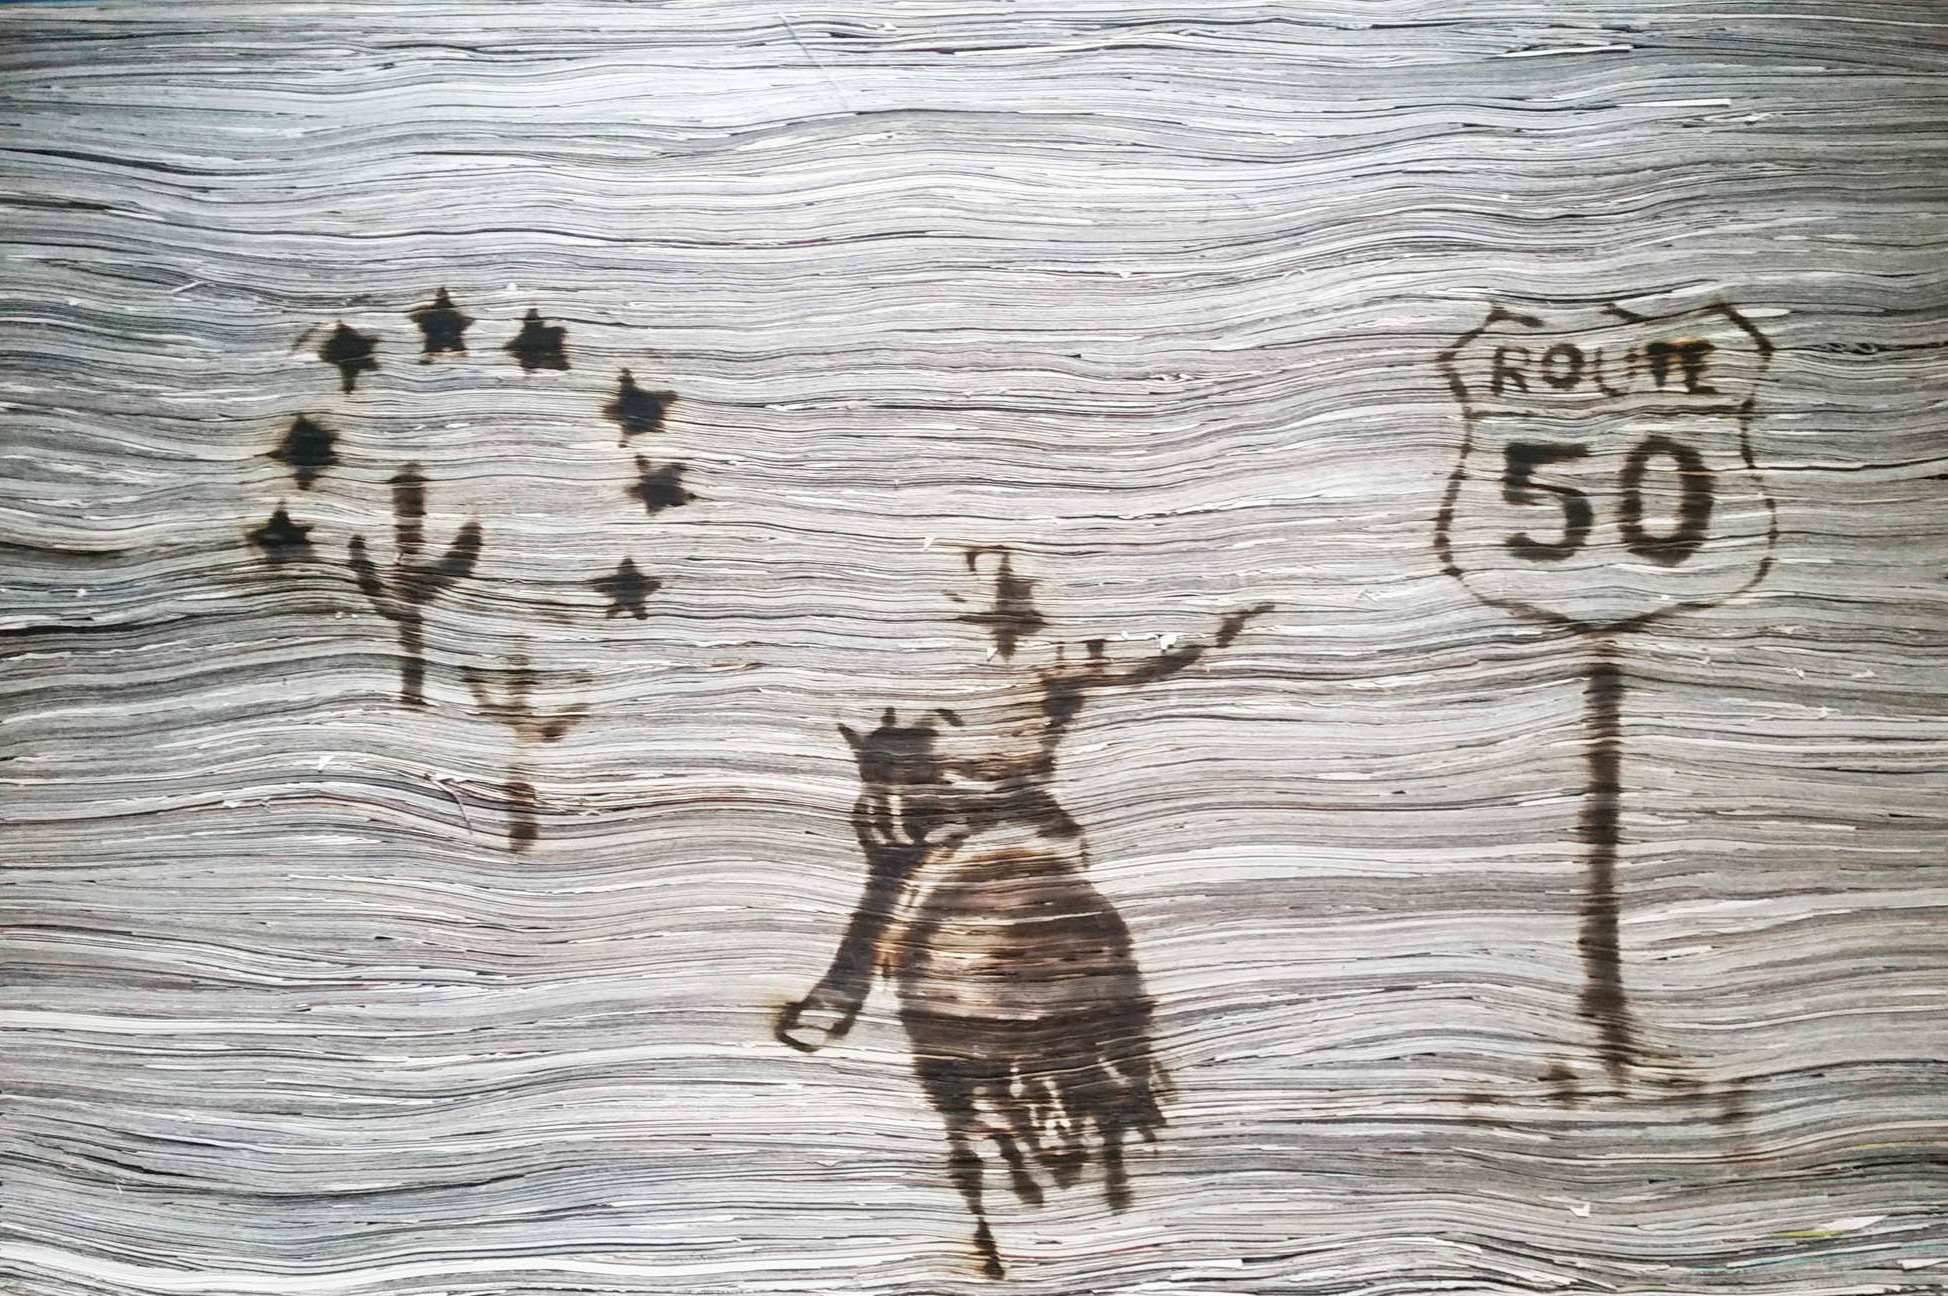 Newspaper artwork by Tracey Falcon. Strips of newspaper which look like wood with an image drawn onto it with a blowtorch. Title BREXAS - A LONE STAR STATE